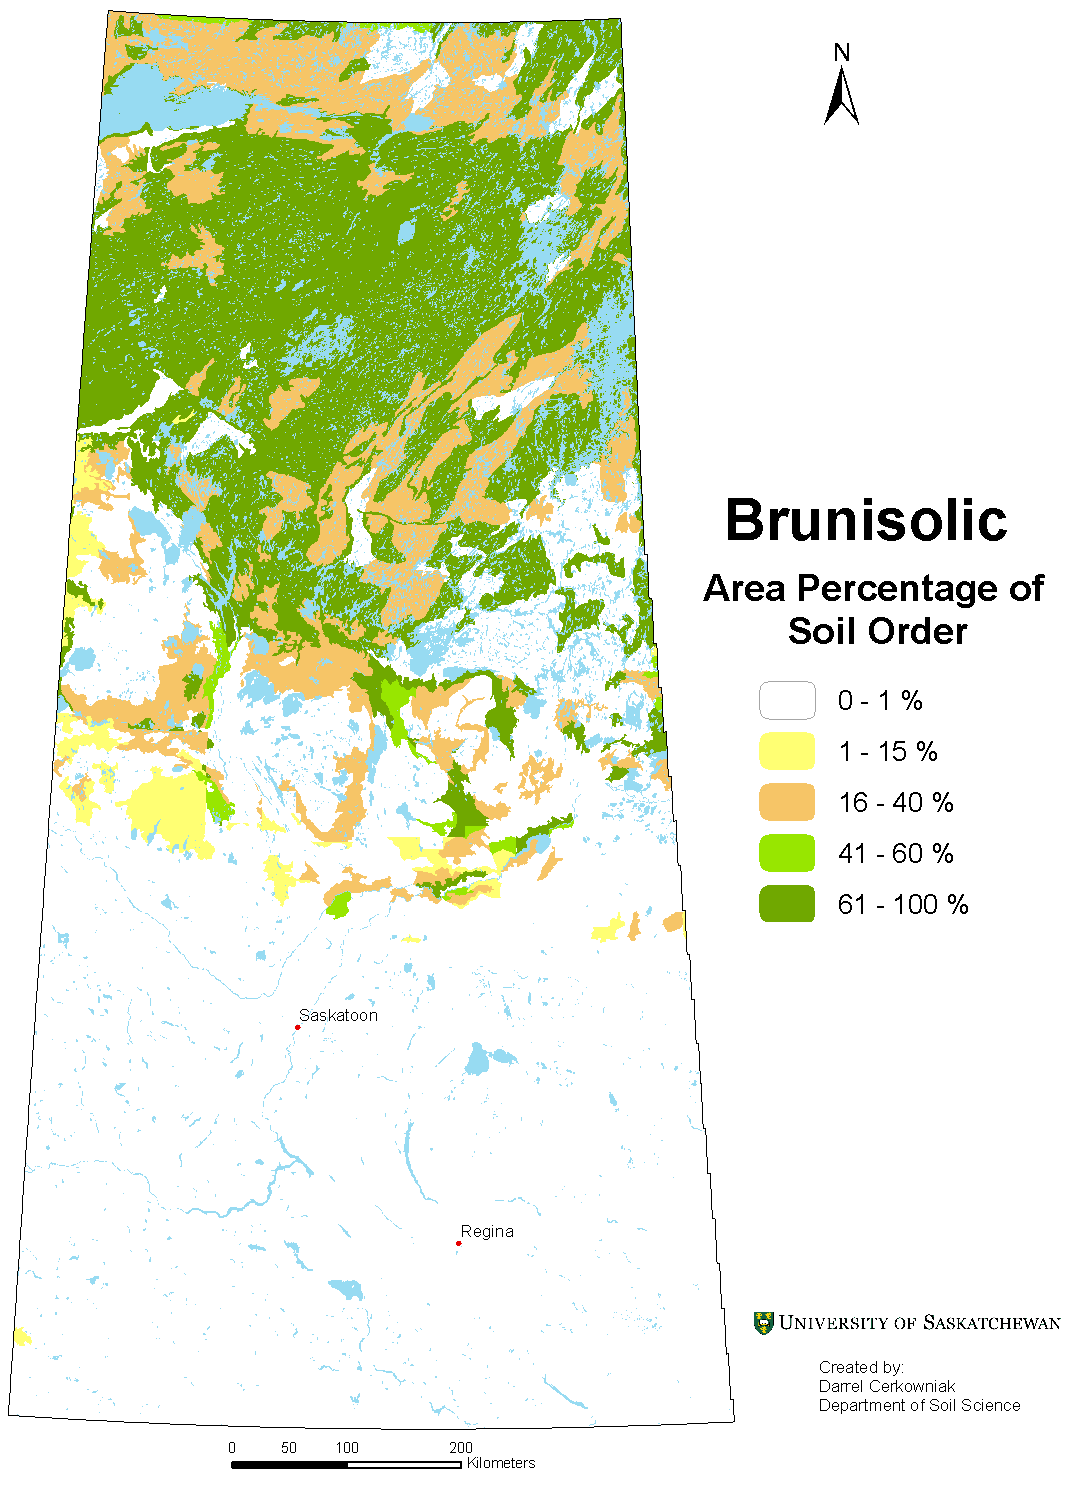 Distribution of Brunisolic soils in Saskatchewan